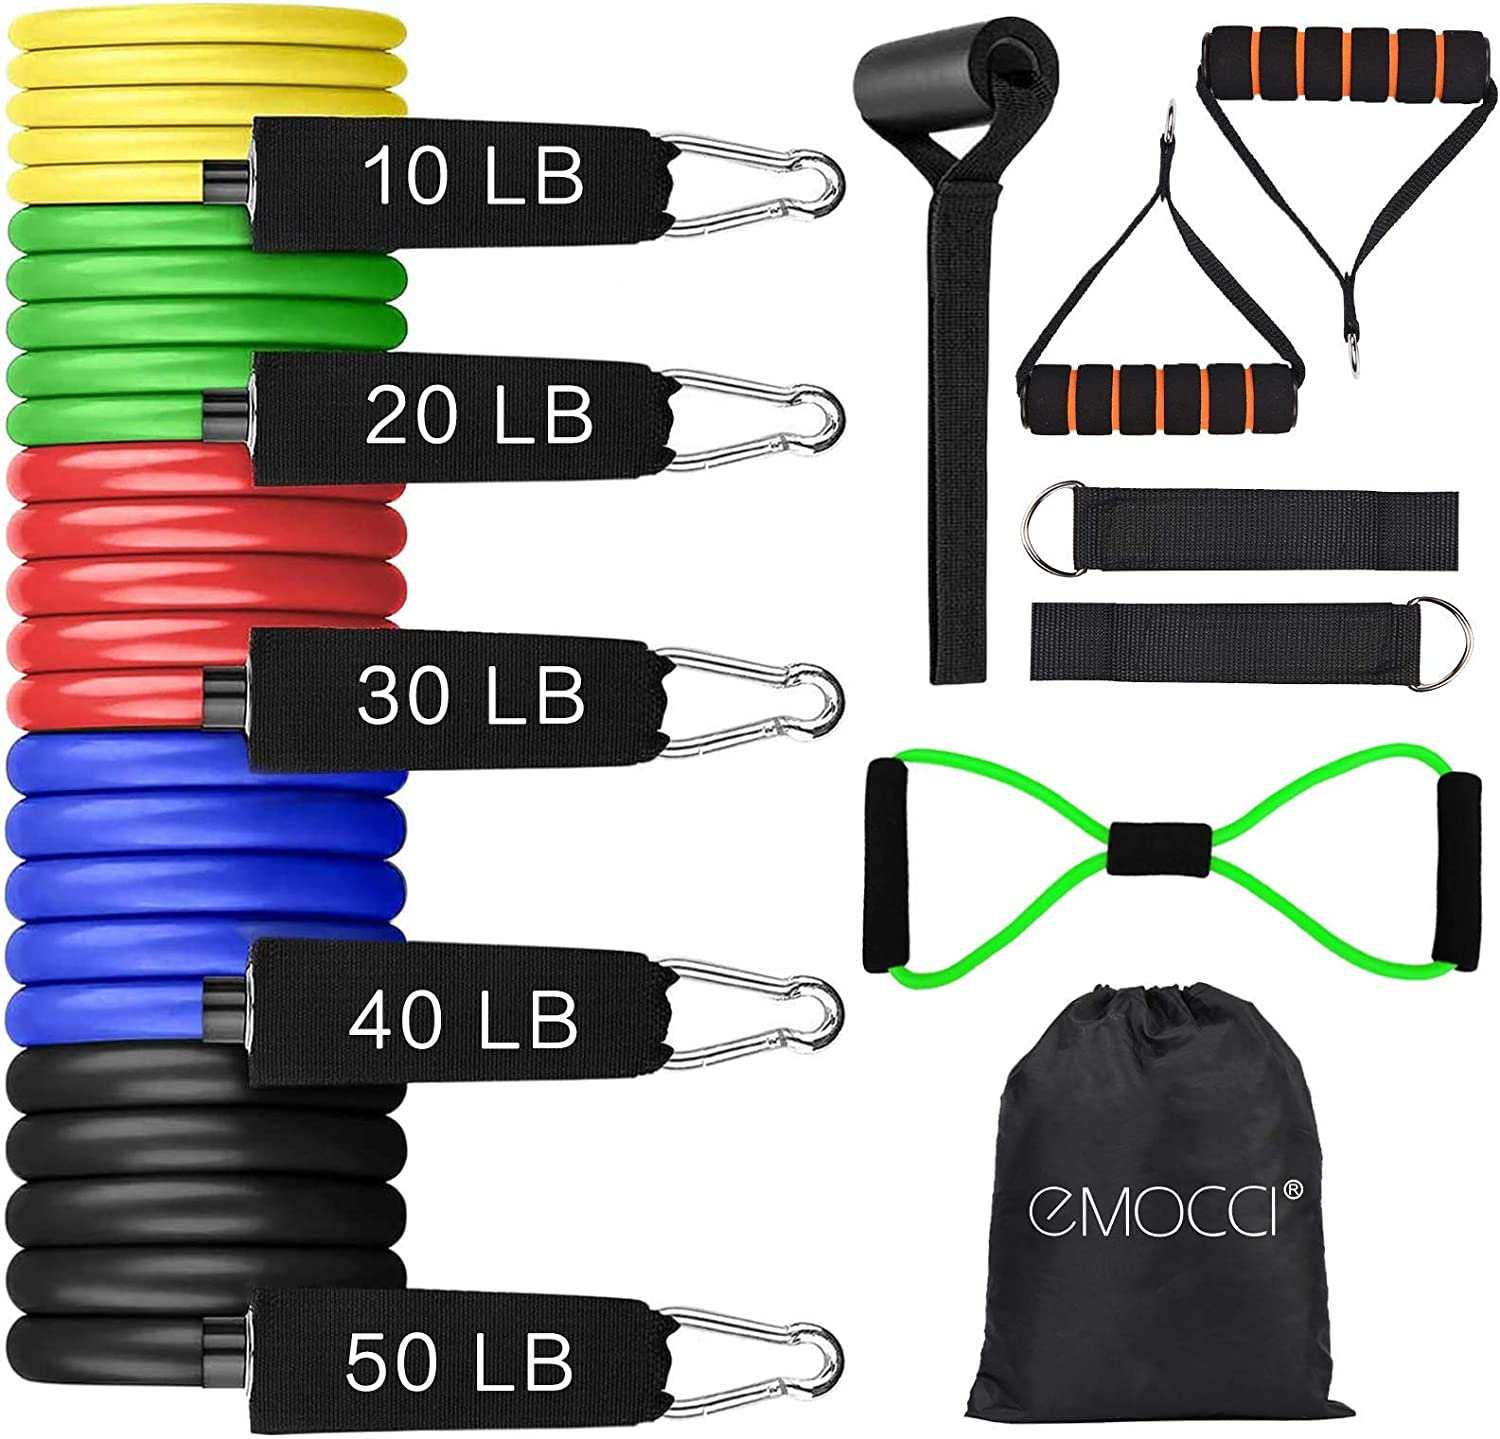 EMOCCI Resistance Bands Set with Handle,Fabric Exercise Band Door Anchor Weight Training Stretching Strap for Women Men Home Fitness Yoga Gym Workout Equipment with Carry Bag(12pcs,150 LB)